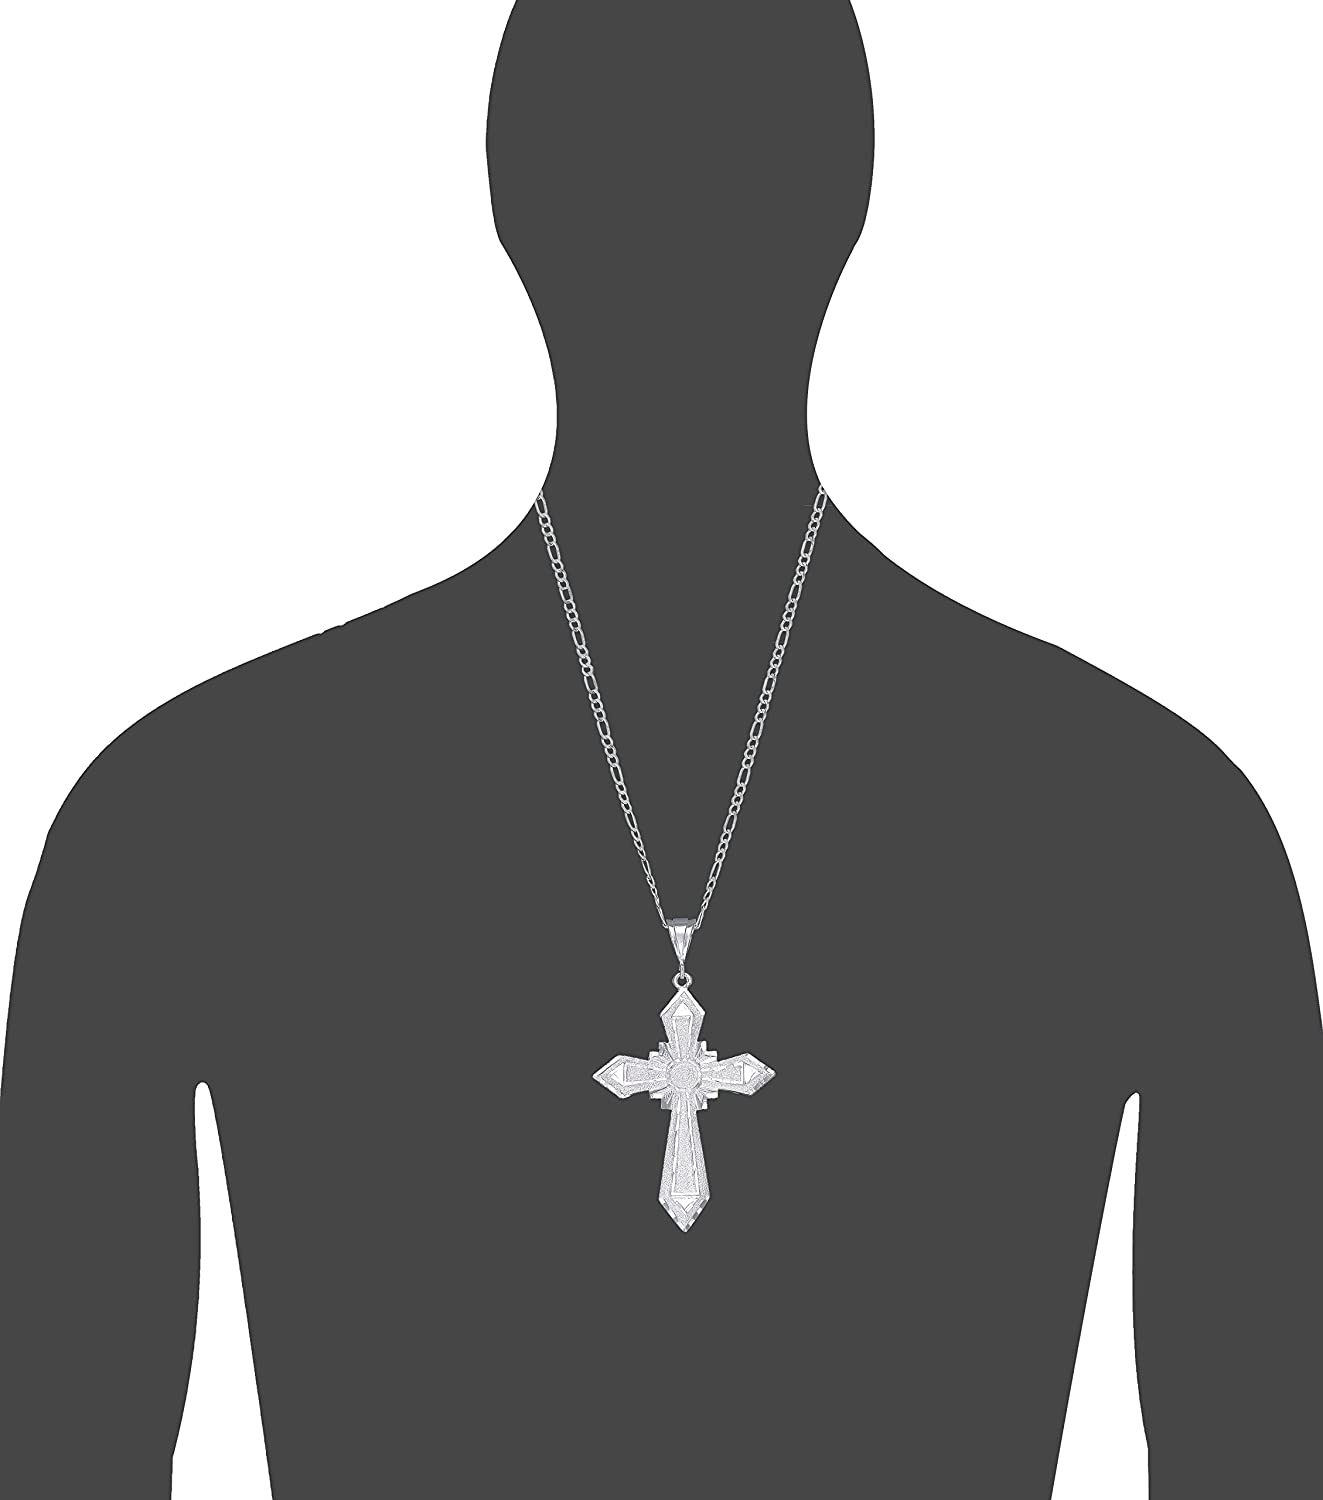 Large Sterling Silver Cross without Jesus Pendant Necklace with Diamond Cut Finish